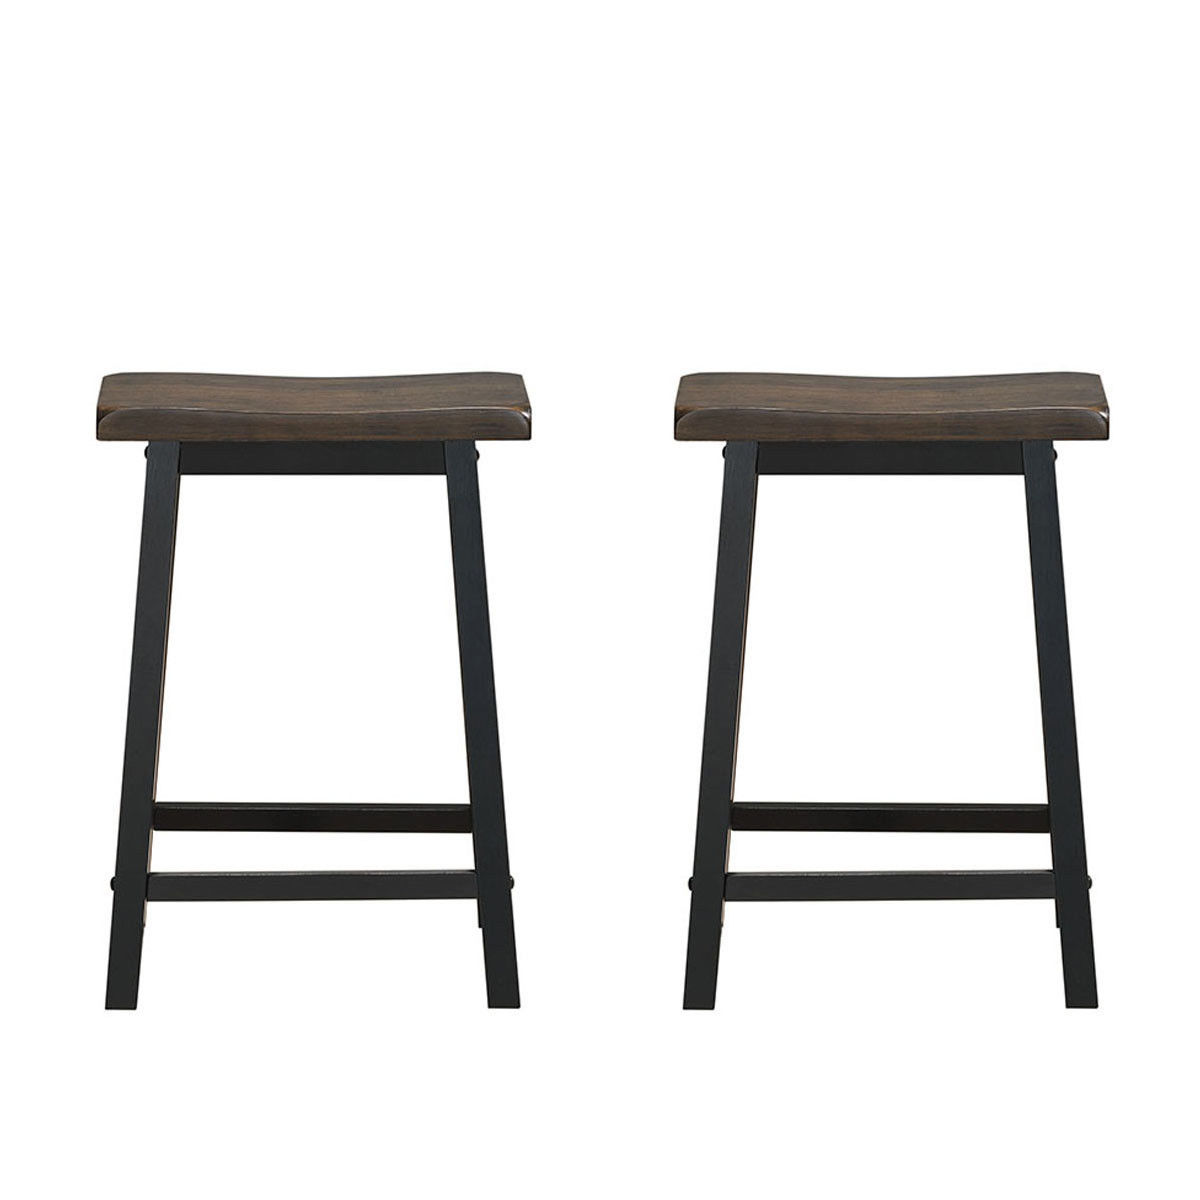 Gymax Set of 2 Bar Stools 24''H Saddle Seat Pub Chair Home Kitchen Dining Room Gray - image 3 de 6